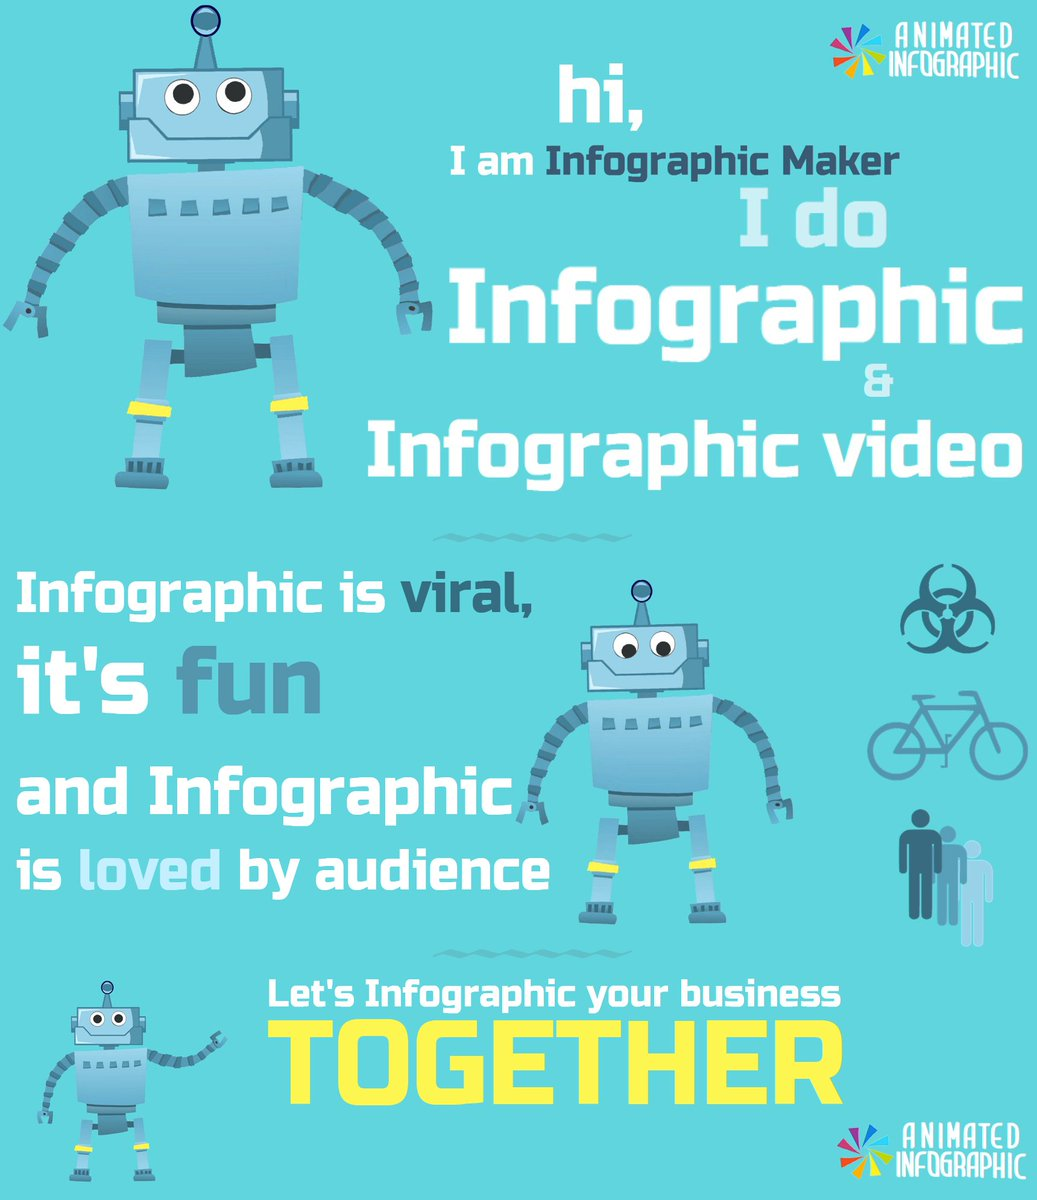 Infographic Maker (@infographicsme) | Twitter